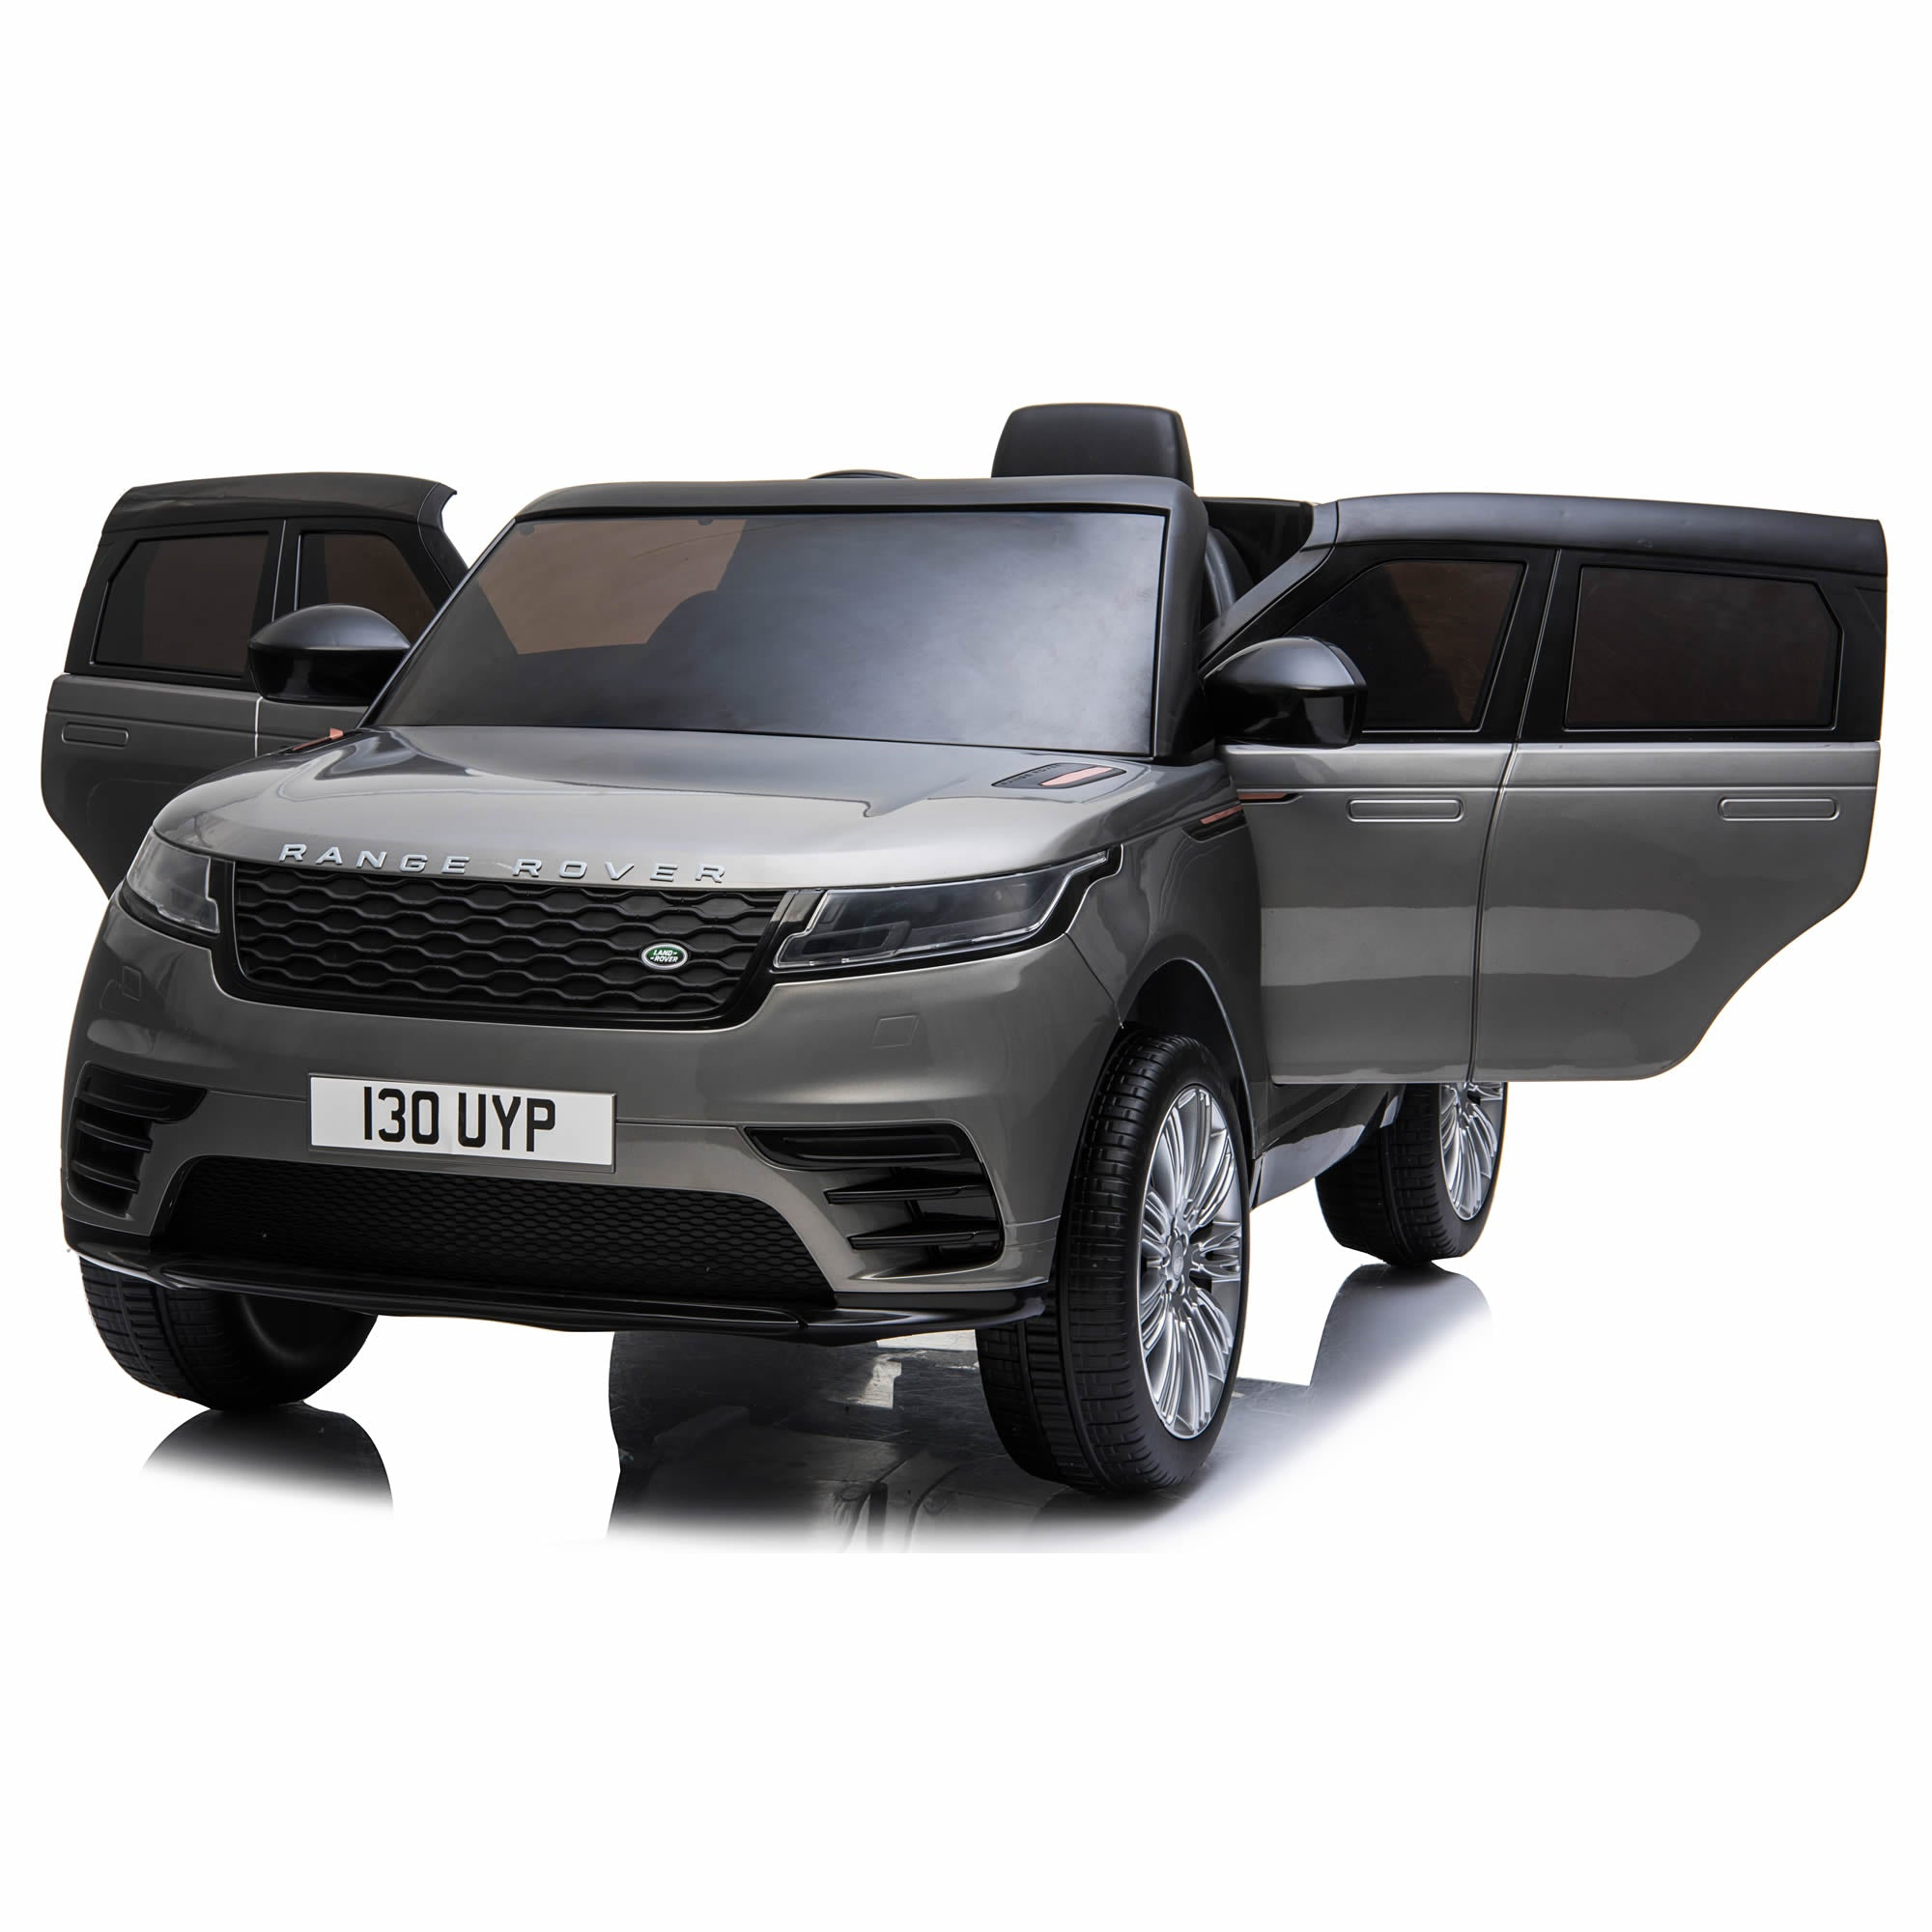 Licensed Range Rover Velar 12V Kids Ride on Car with Remote - Grey